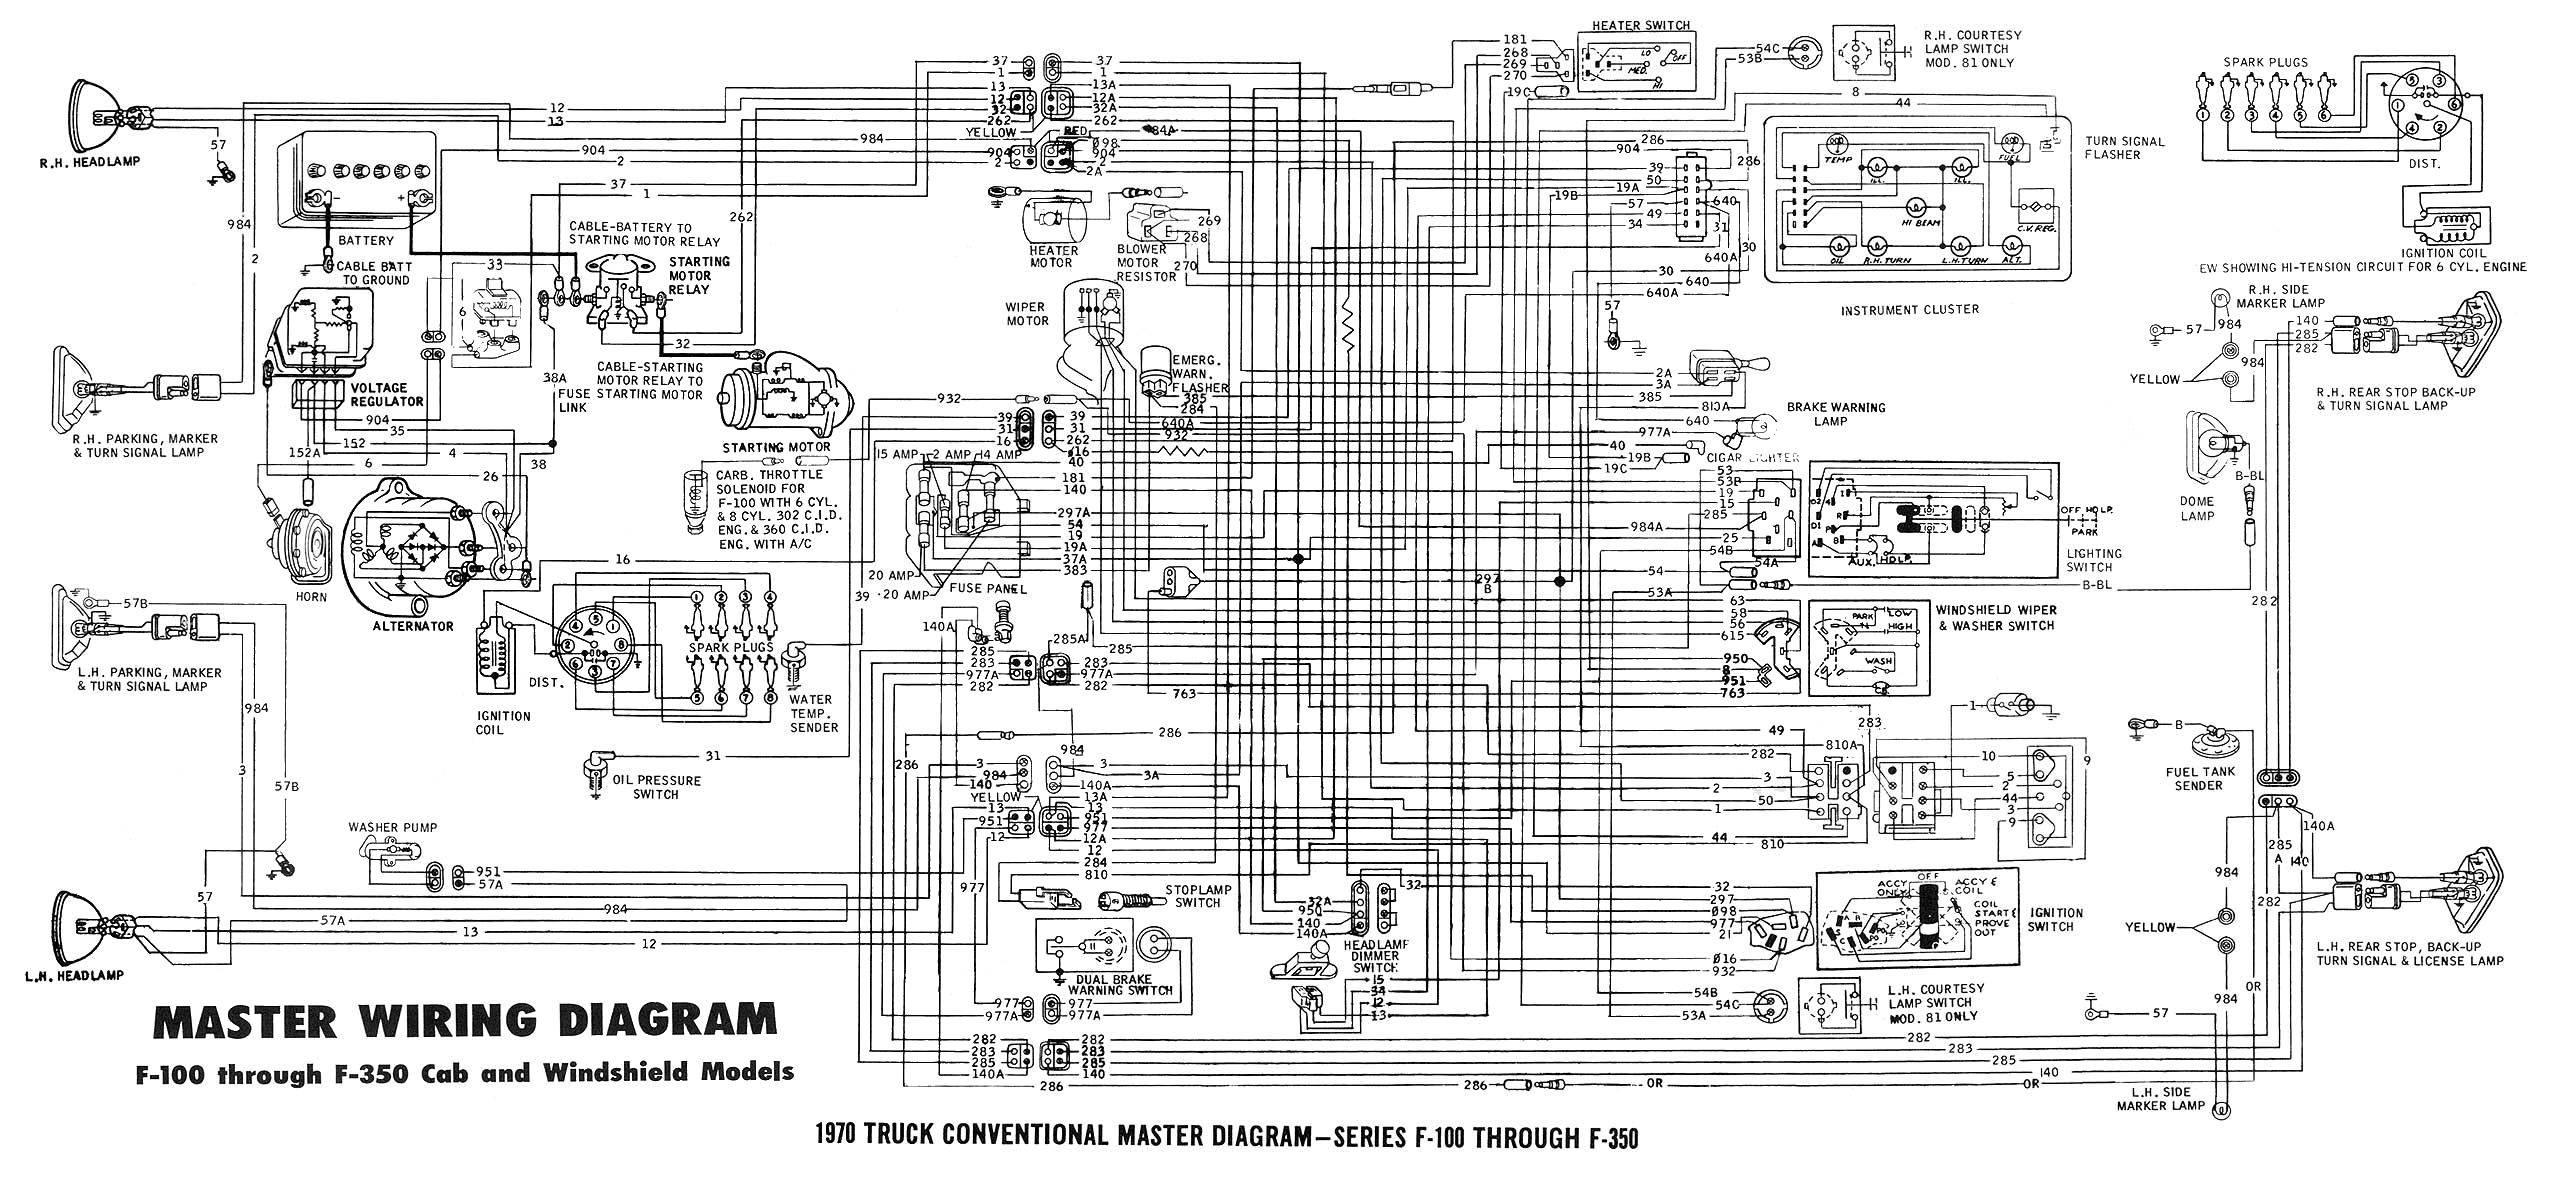 ford 1700 wiring diagram ford f150 wiring diagram ford wiring diagrams